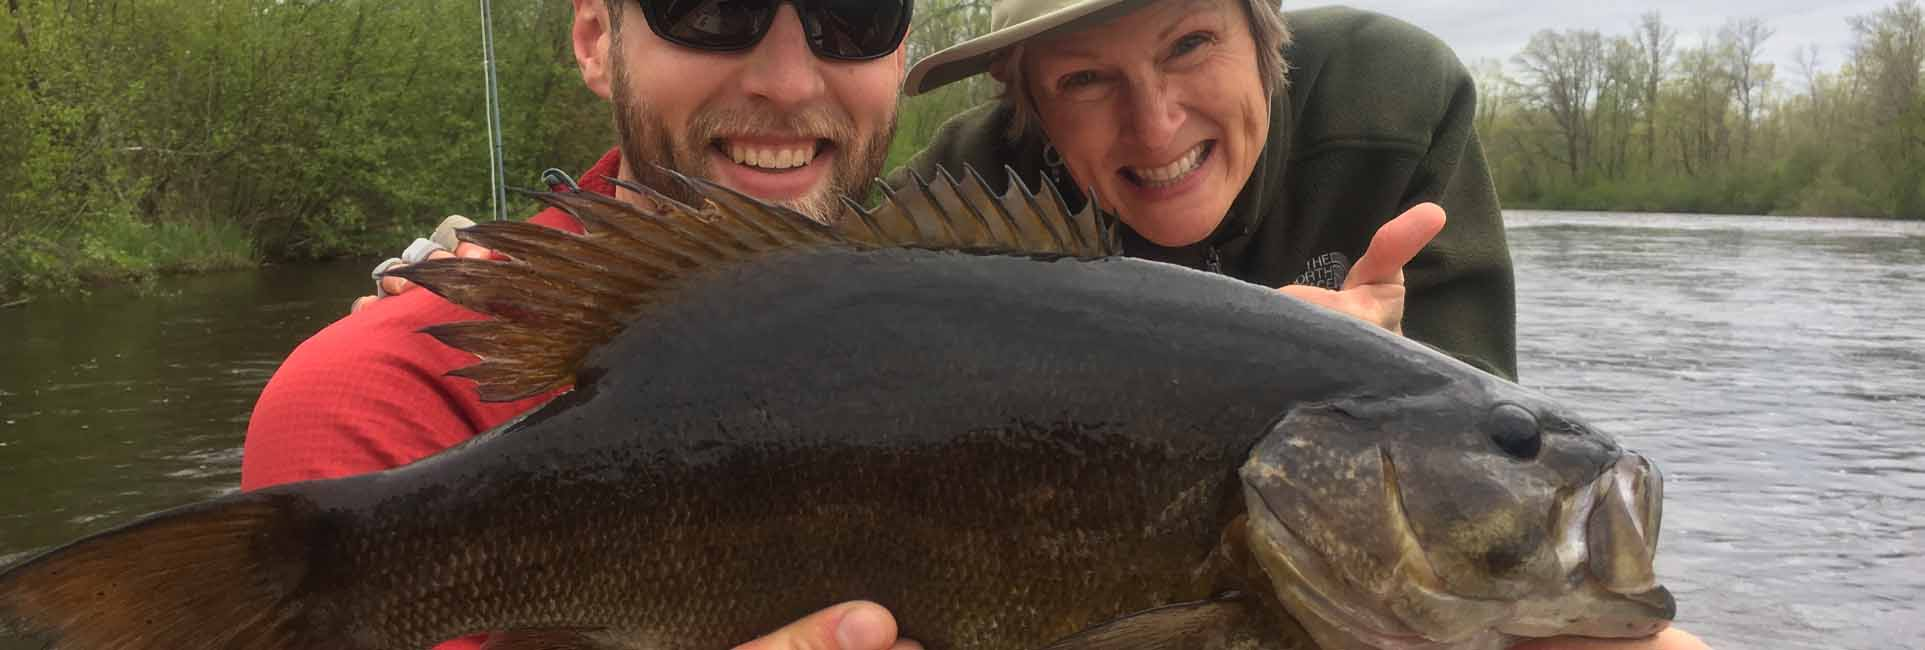 slide-fly-fish-wisconsin-smallmouth-bass